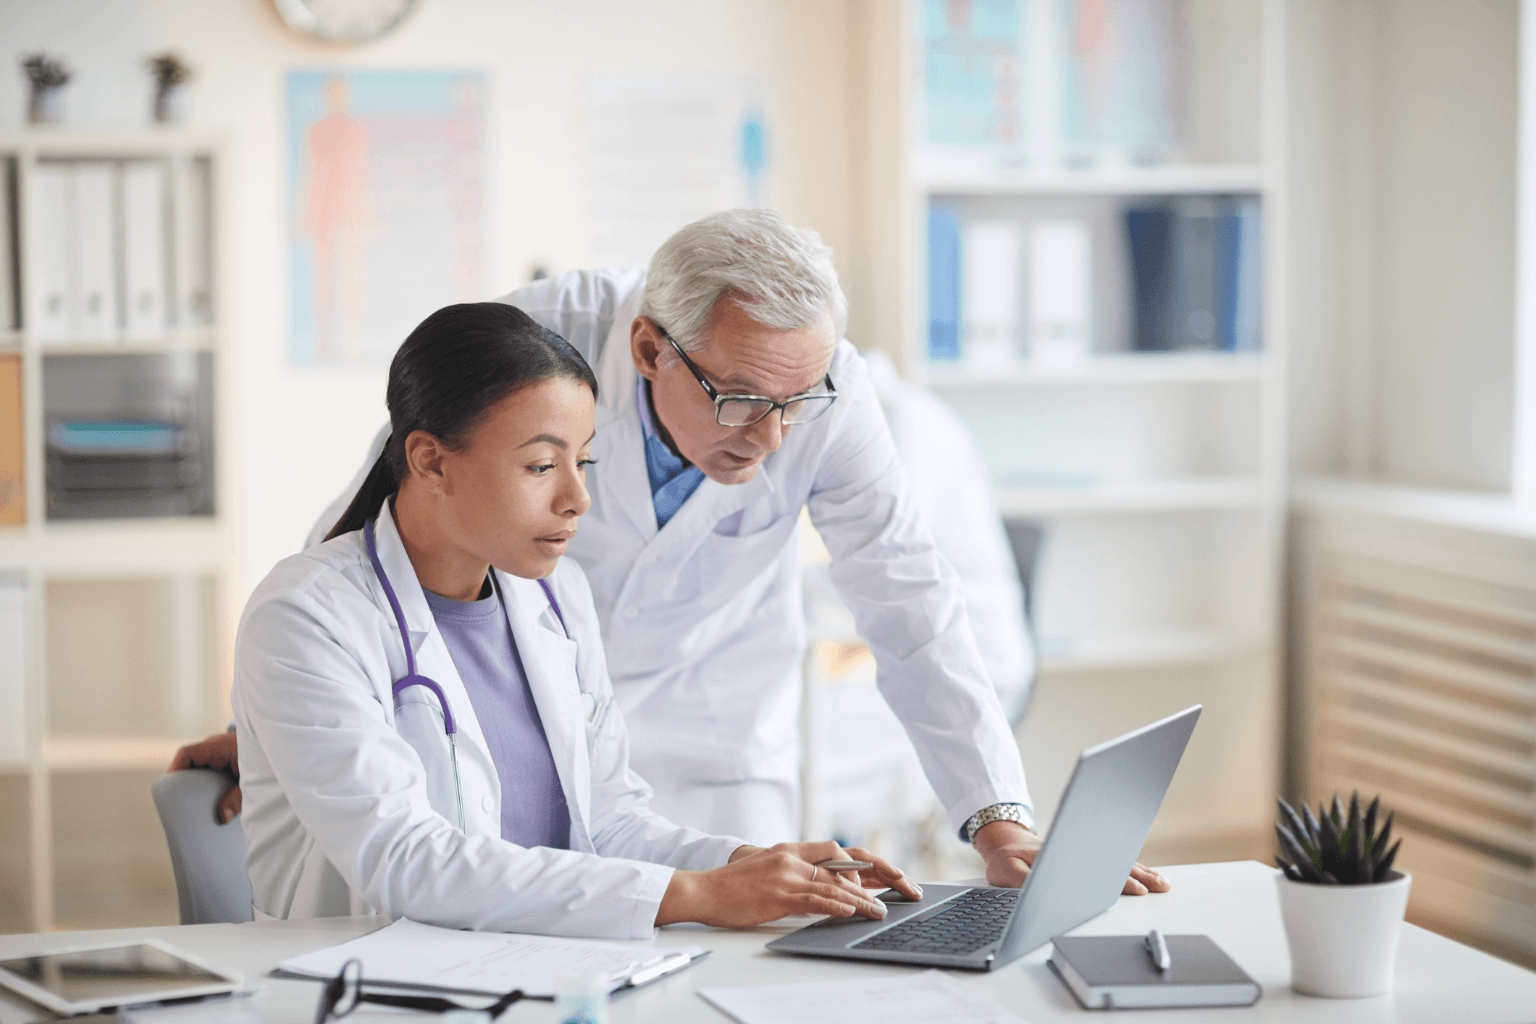 ICD-10 is here again: A look at the 2022 code updates